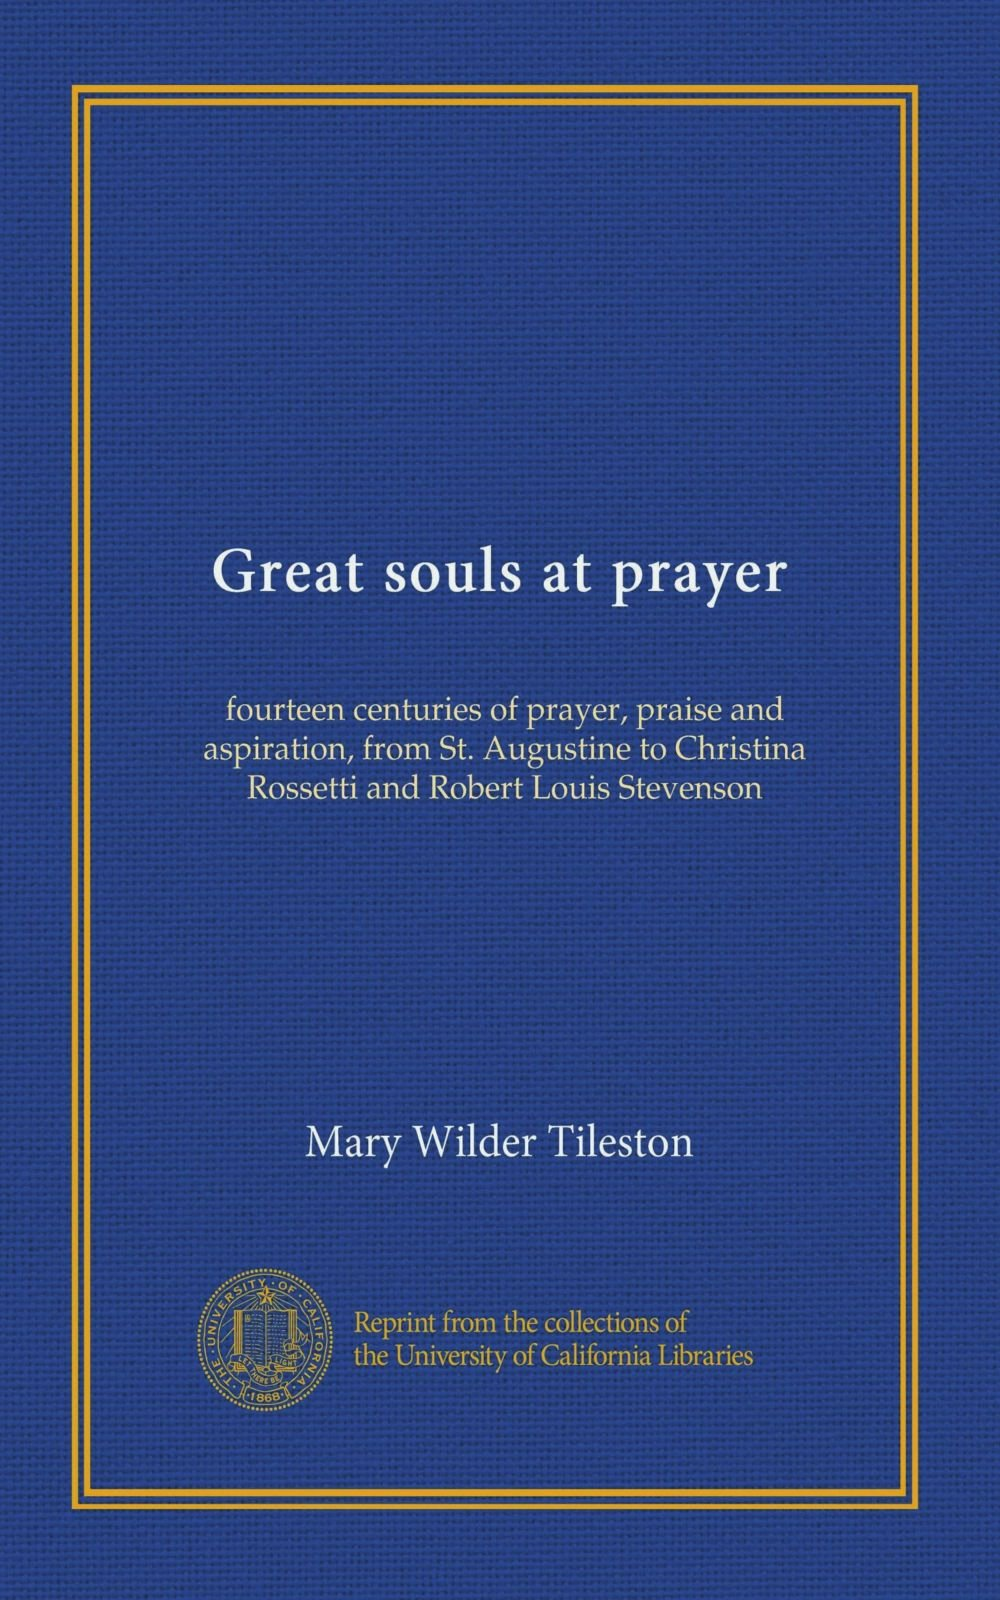 Download Great souls at prayer: fourteen centuries of prayer, praise and aspiration, from St. Augustine to Christina Rossetti and Robert Louis Stevenson pdf